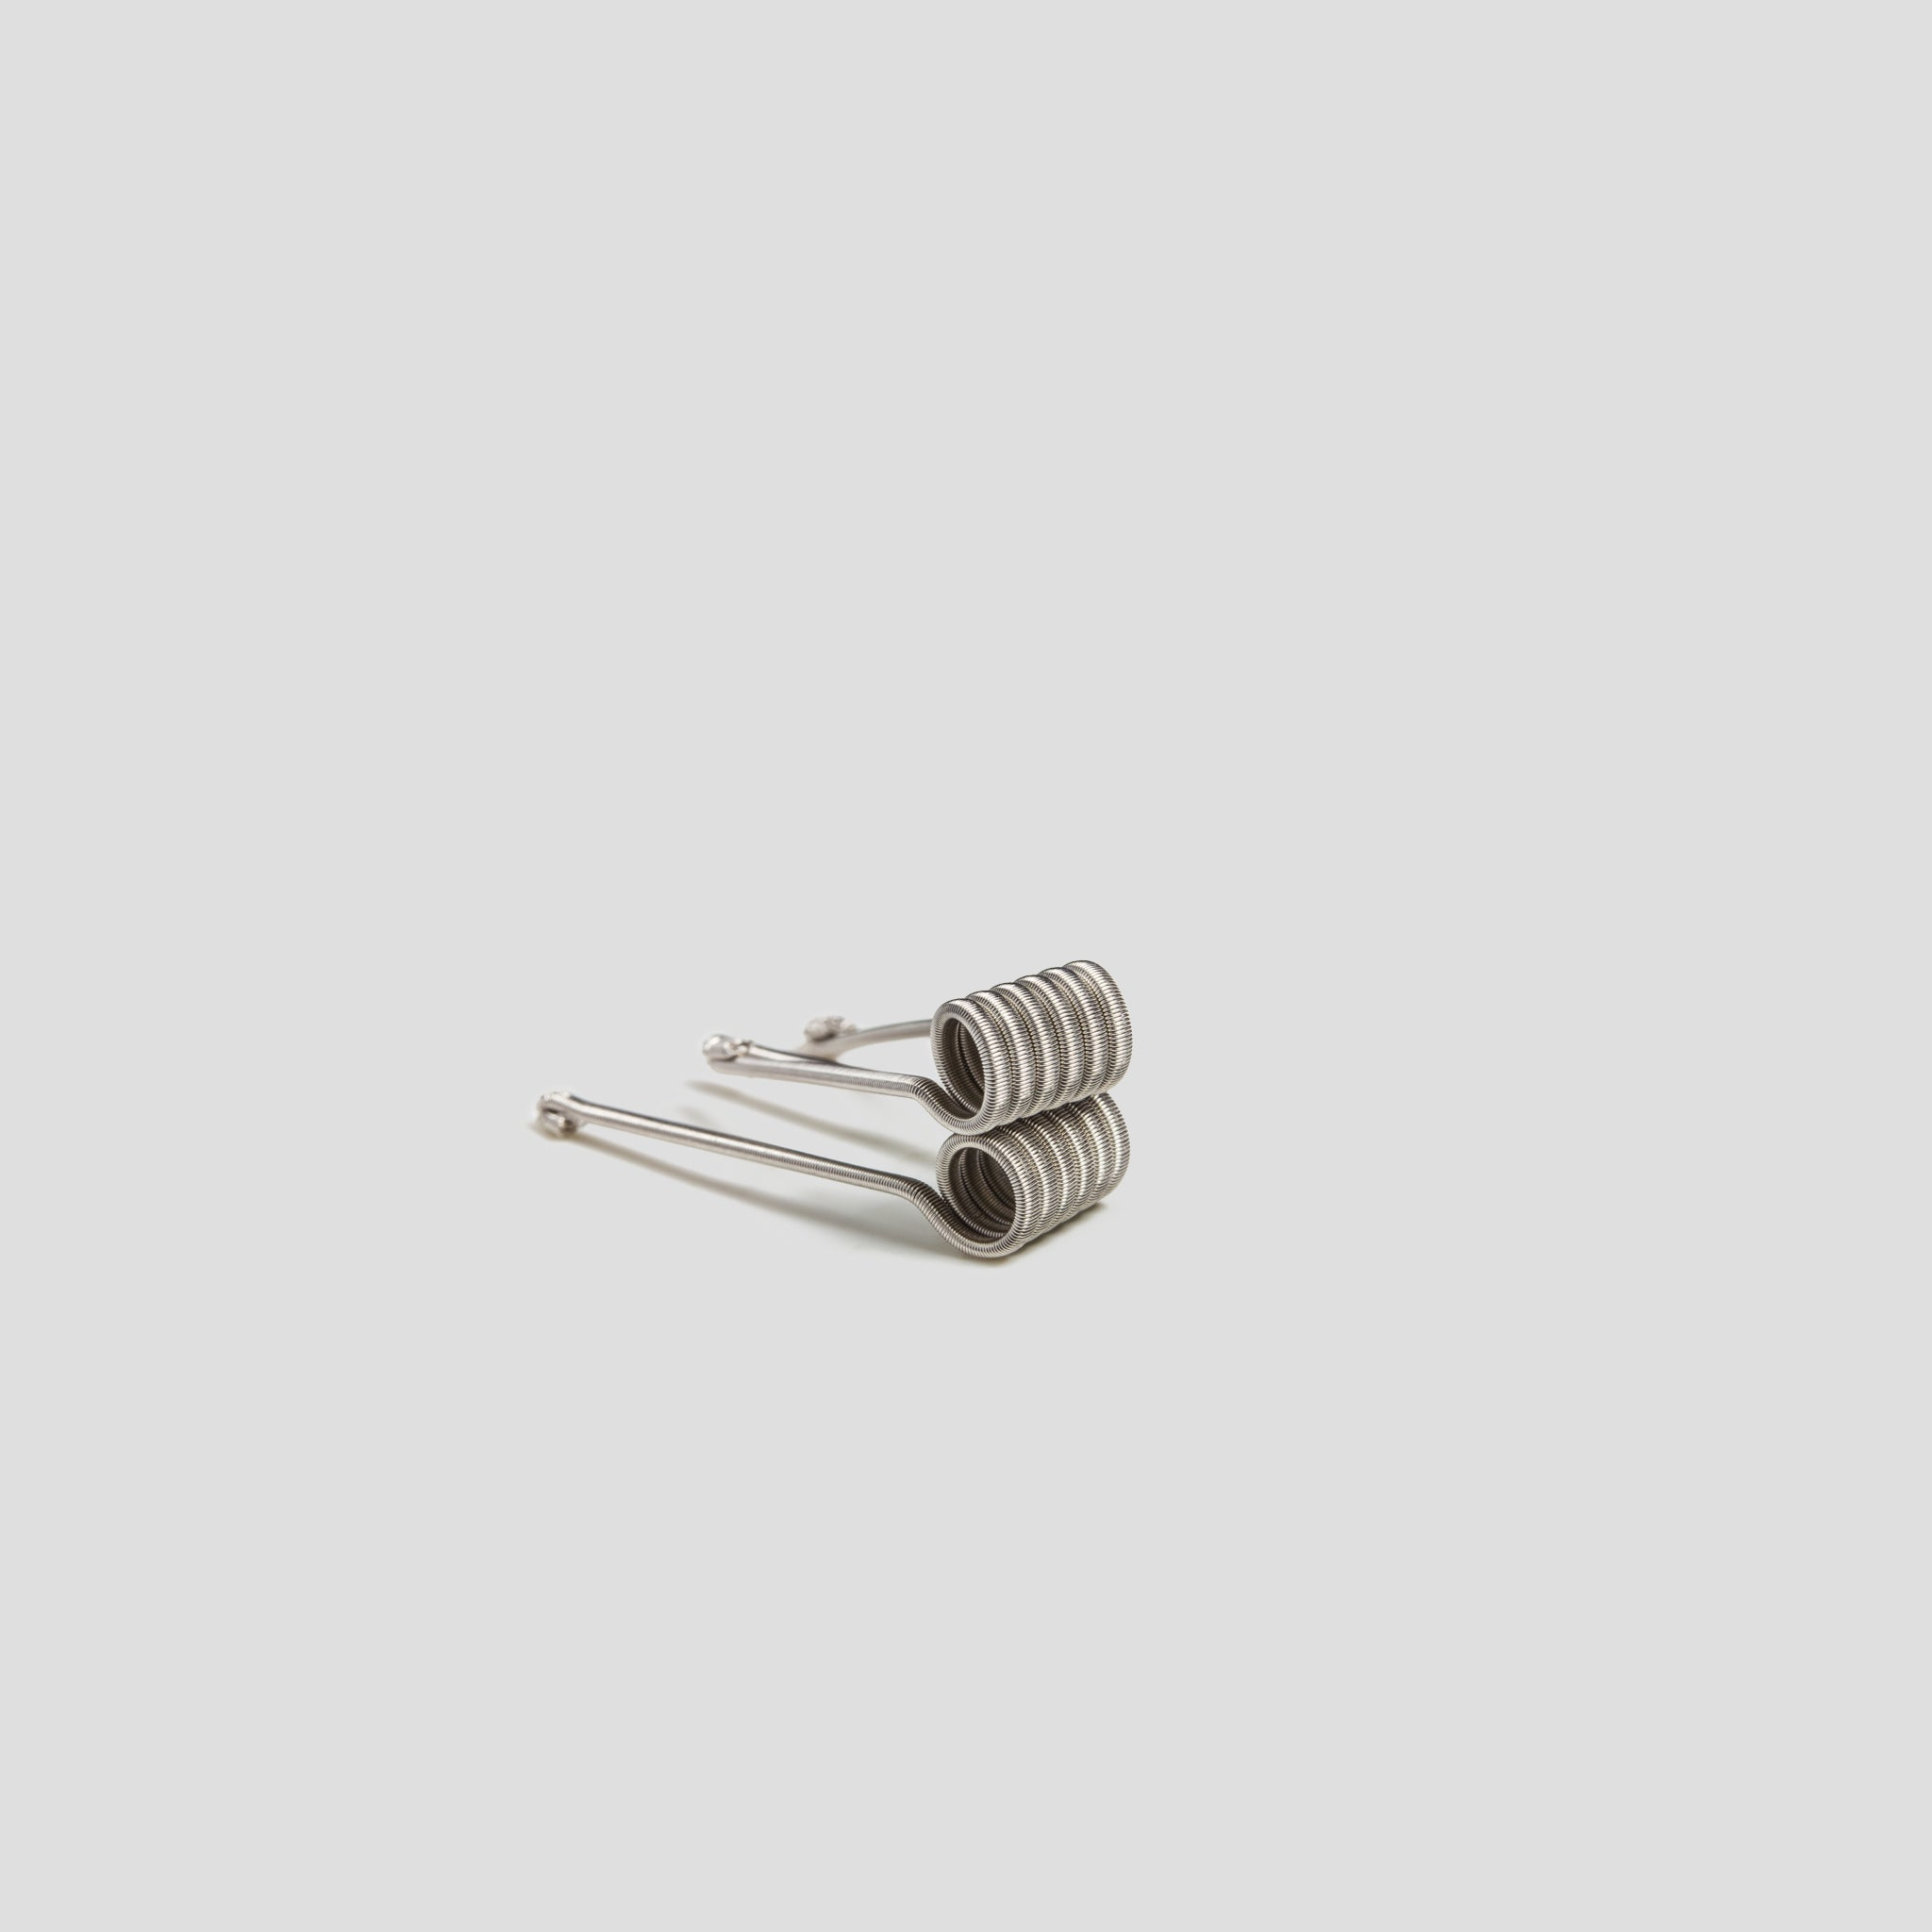 gasPhase NiCr80 Pre-Built Nichrome Wire Coils